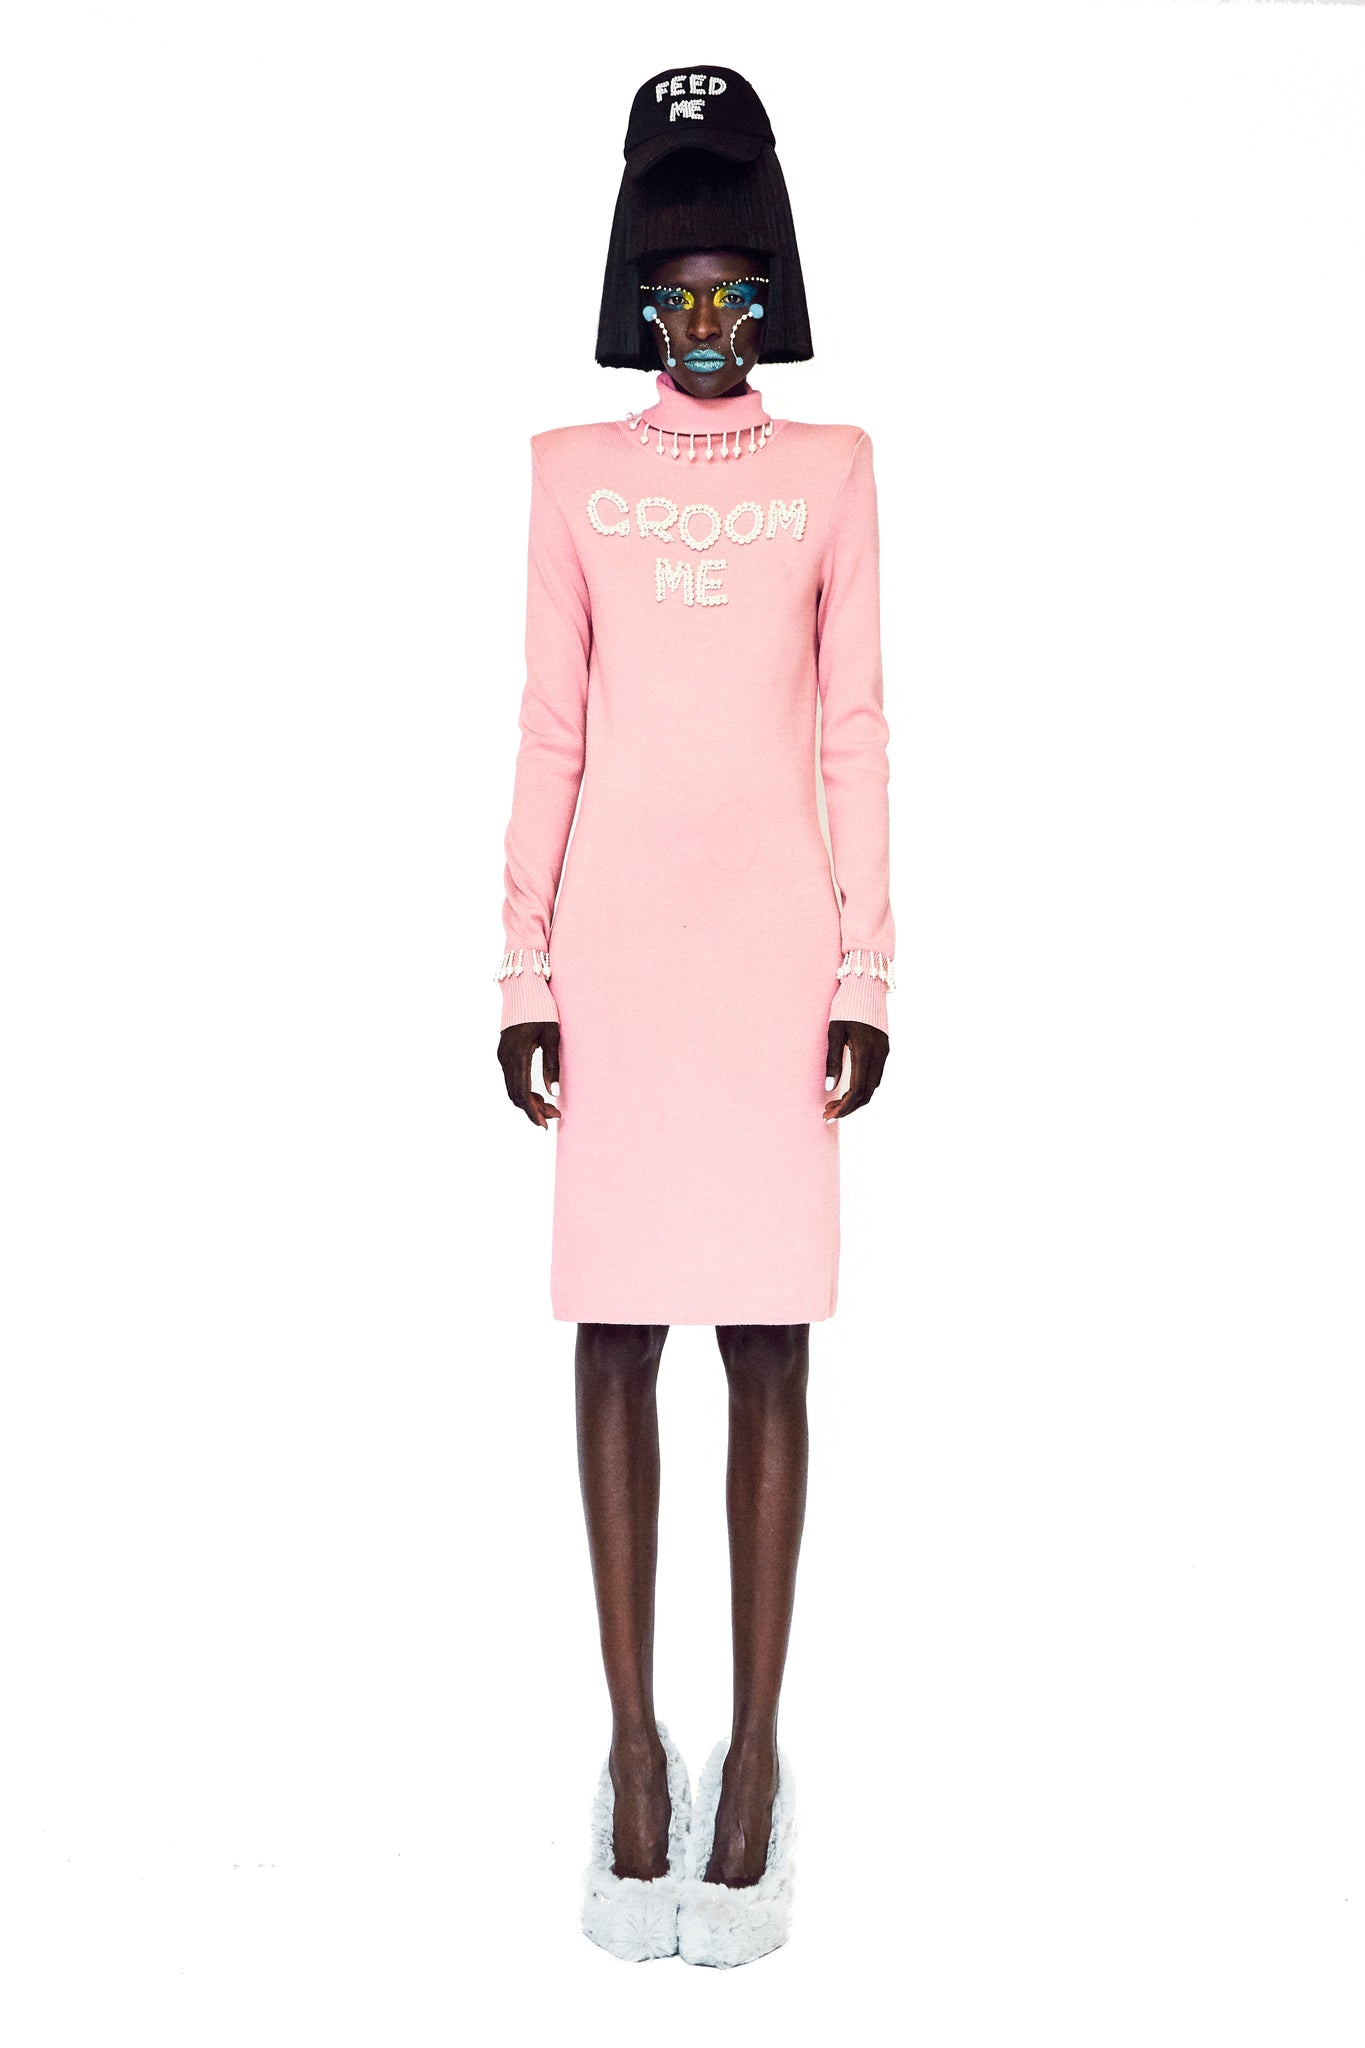 Pink Turtle Neck Sweater Dress with Pearl Embellishments at Chest